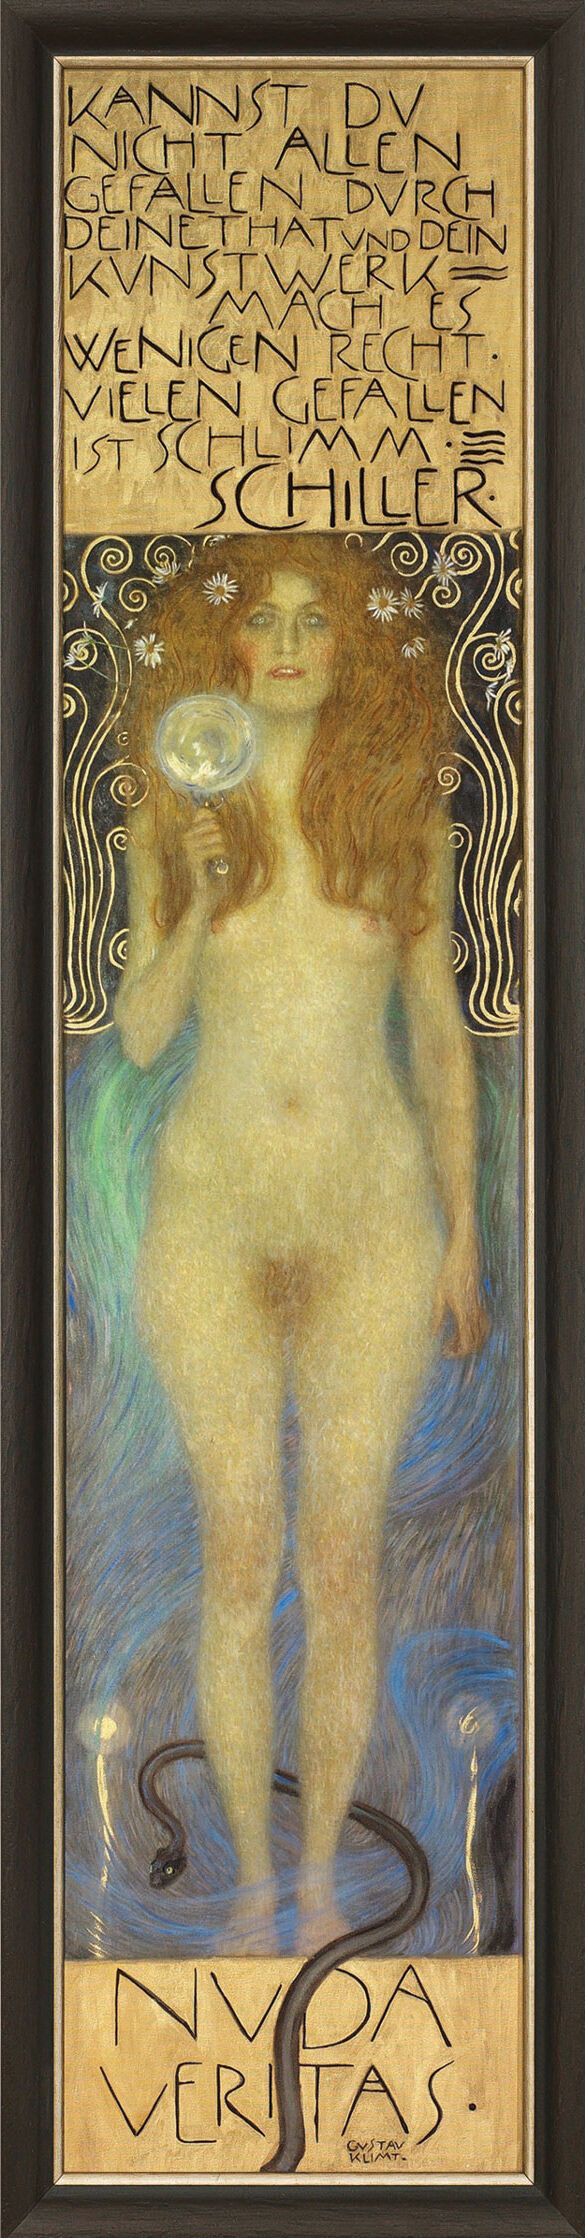 """Painting """"The Naked Truth - Nuda Veritas"""" (1899) in a frame"""